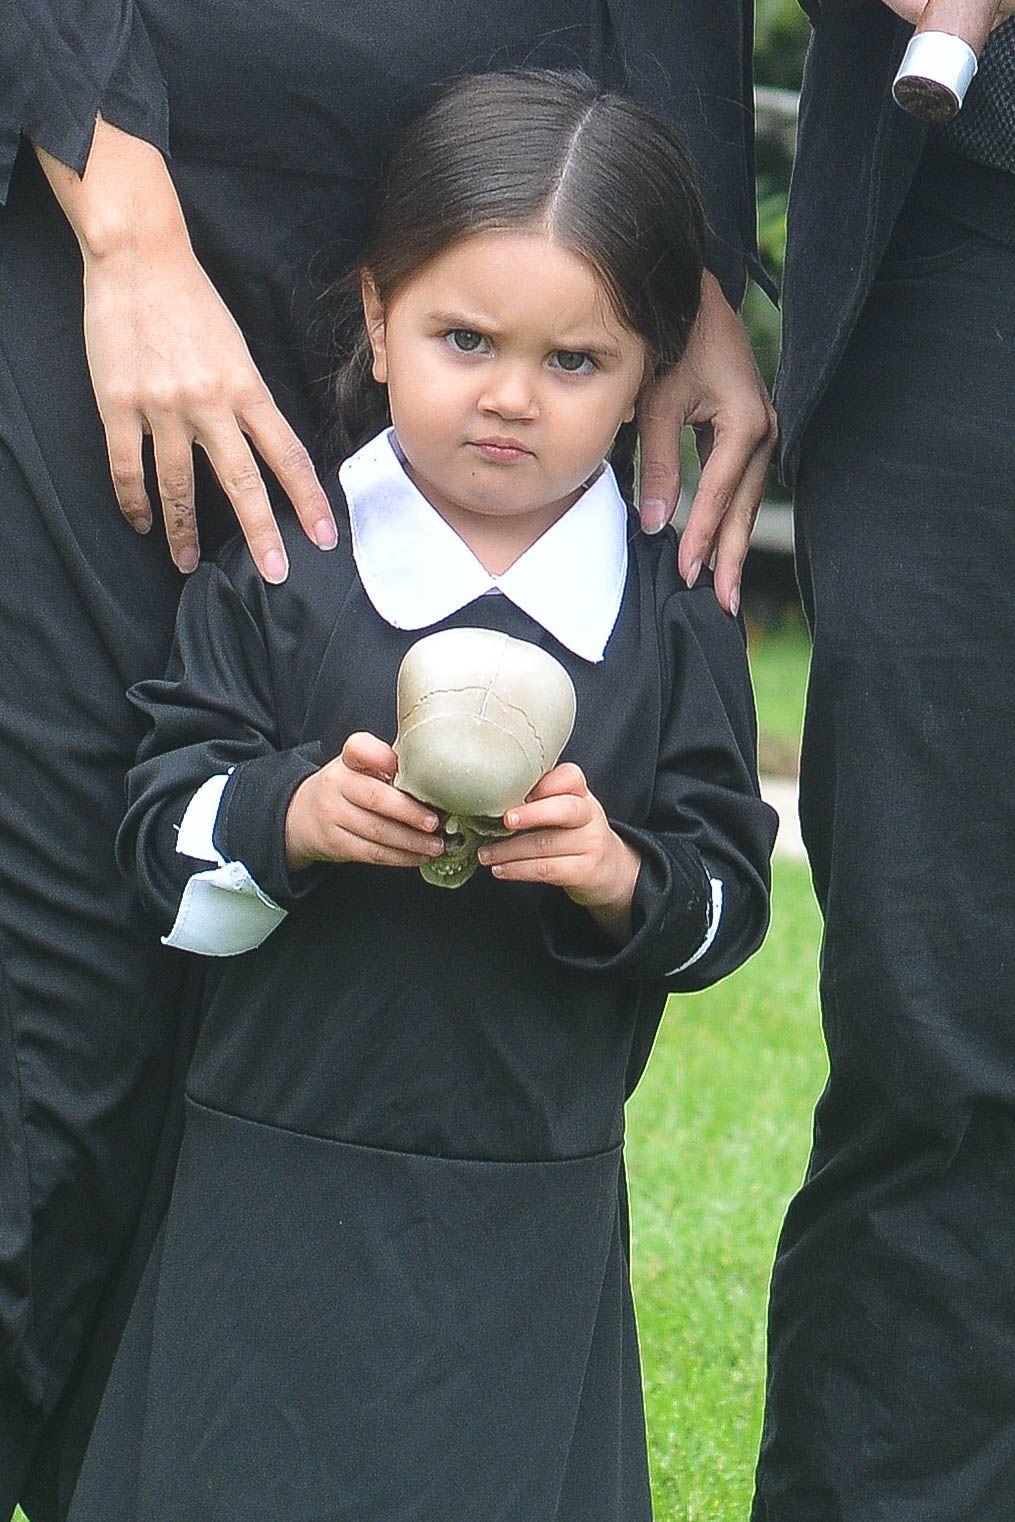 Wednesday Addams Toddler costume 2 year old costume